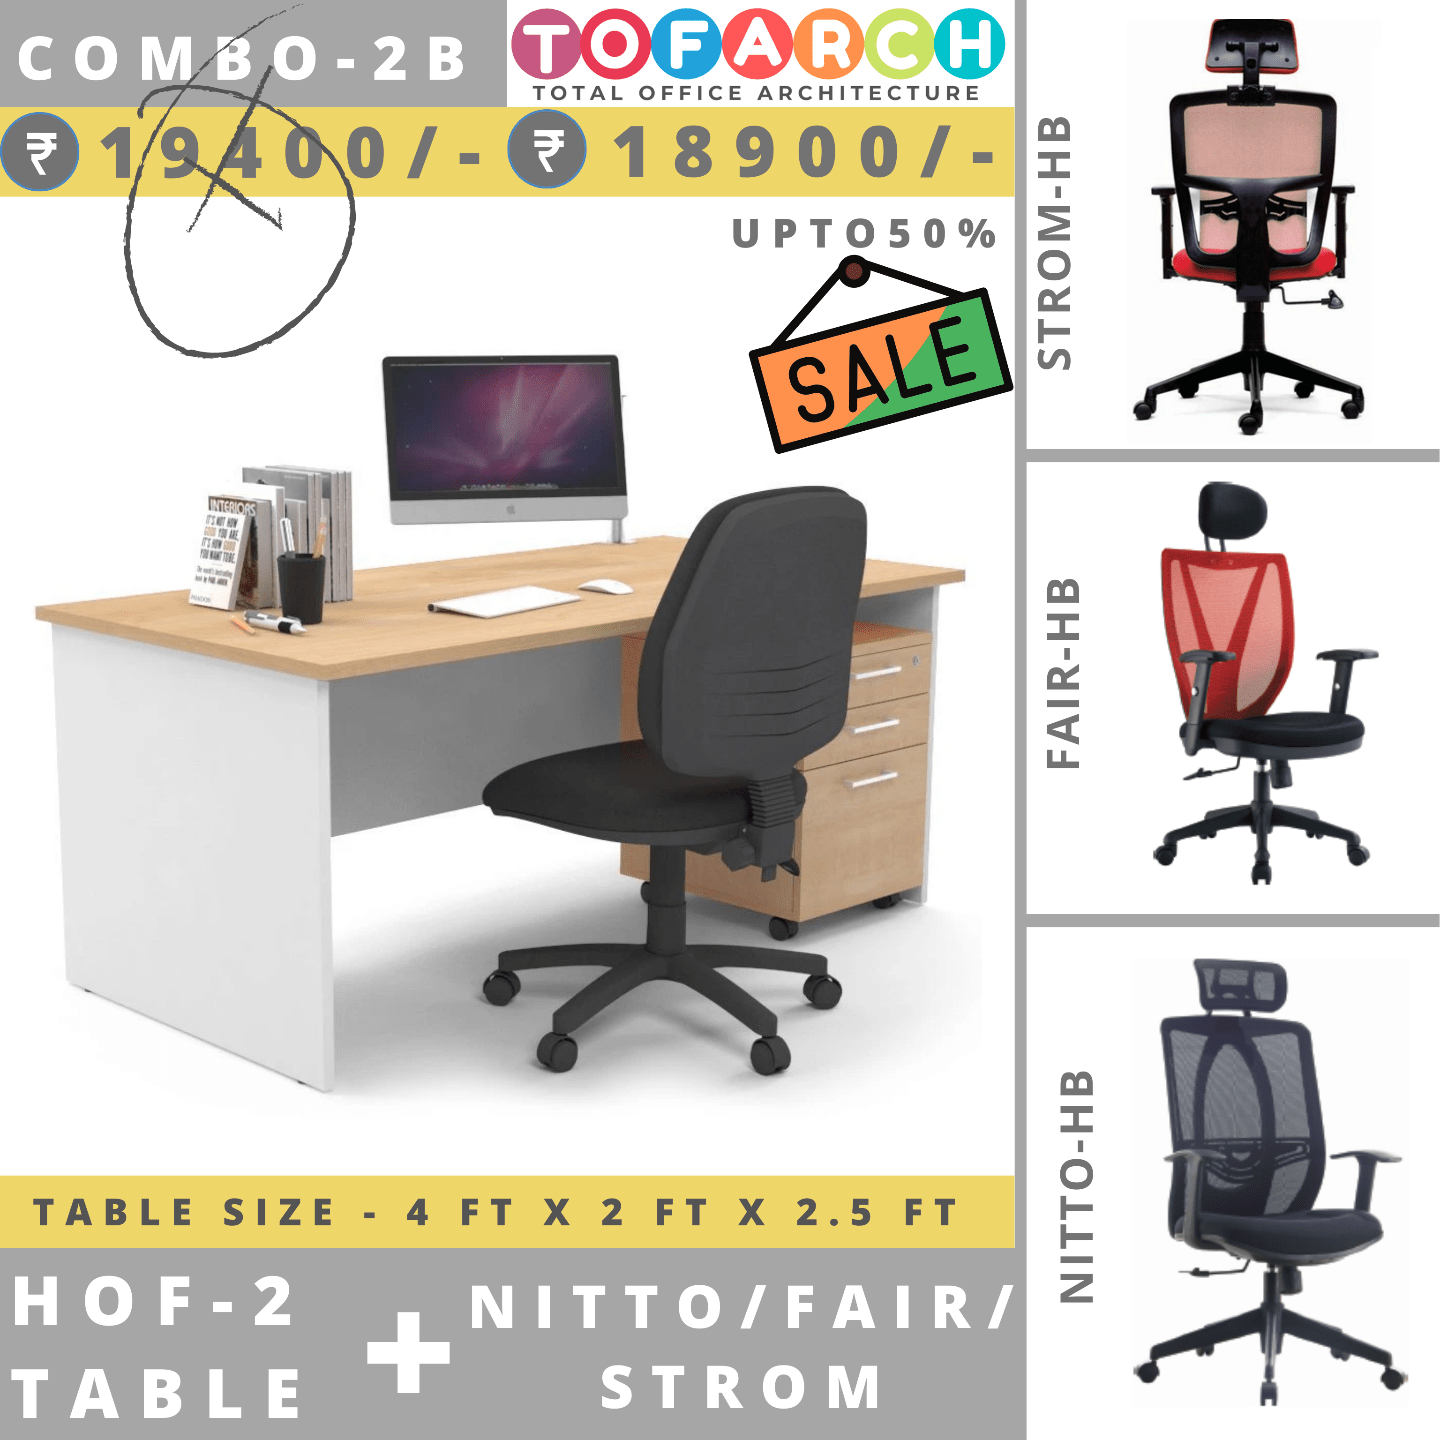 Table Chair Combo - 2B HOF 2 + NITTO  FAIR  STROM